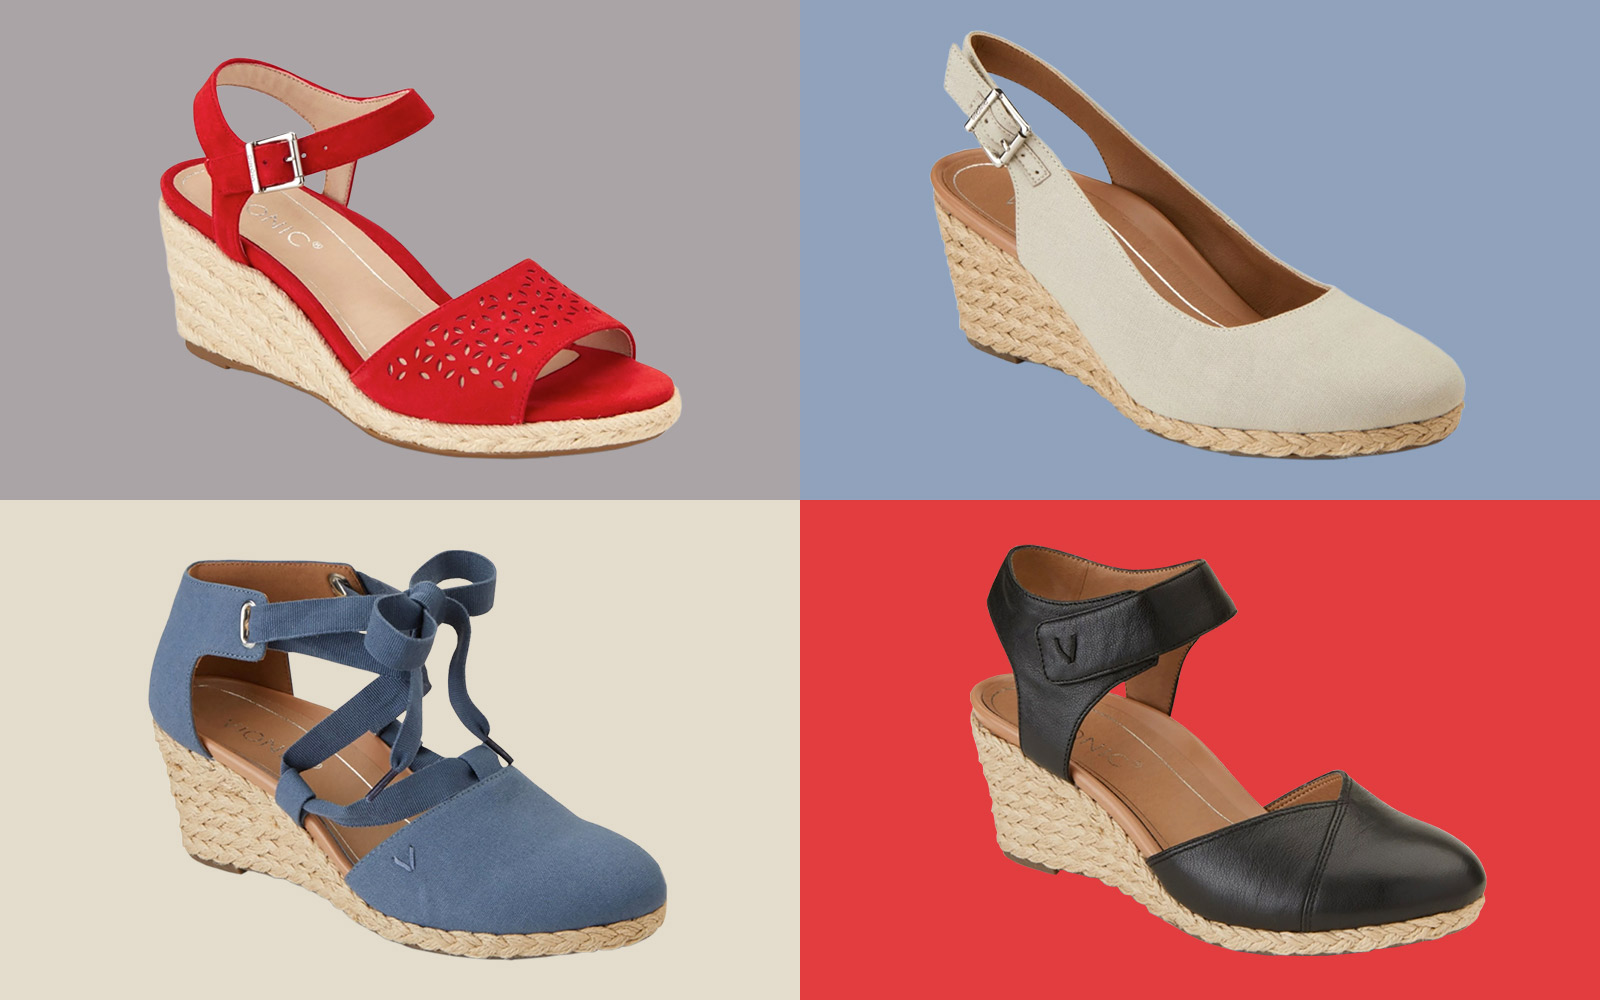 This Podiatrist-designed Shoe Brand Just Launched the Cutest Line of Espadrilles